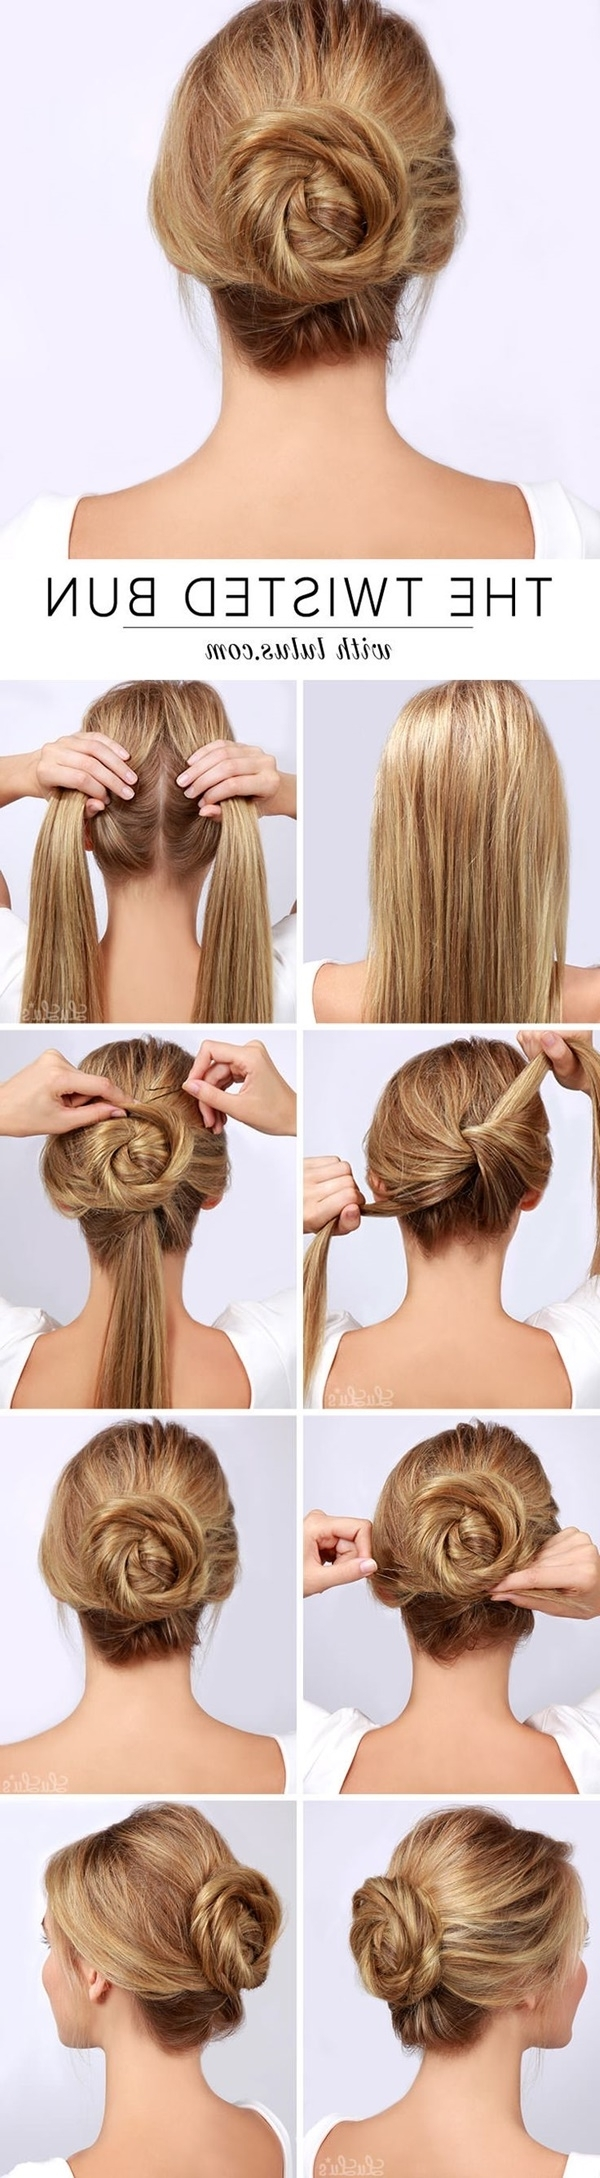 101 Cute & Easy Bun Hairstyles For Long Hair And Medium Hair Within Professional Updo Hairstyles For Long Hair (View 3 of 15)